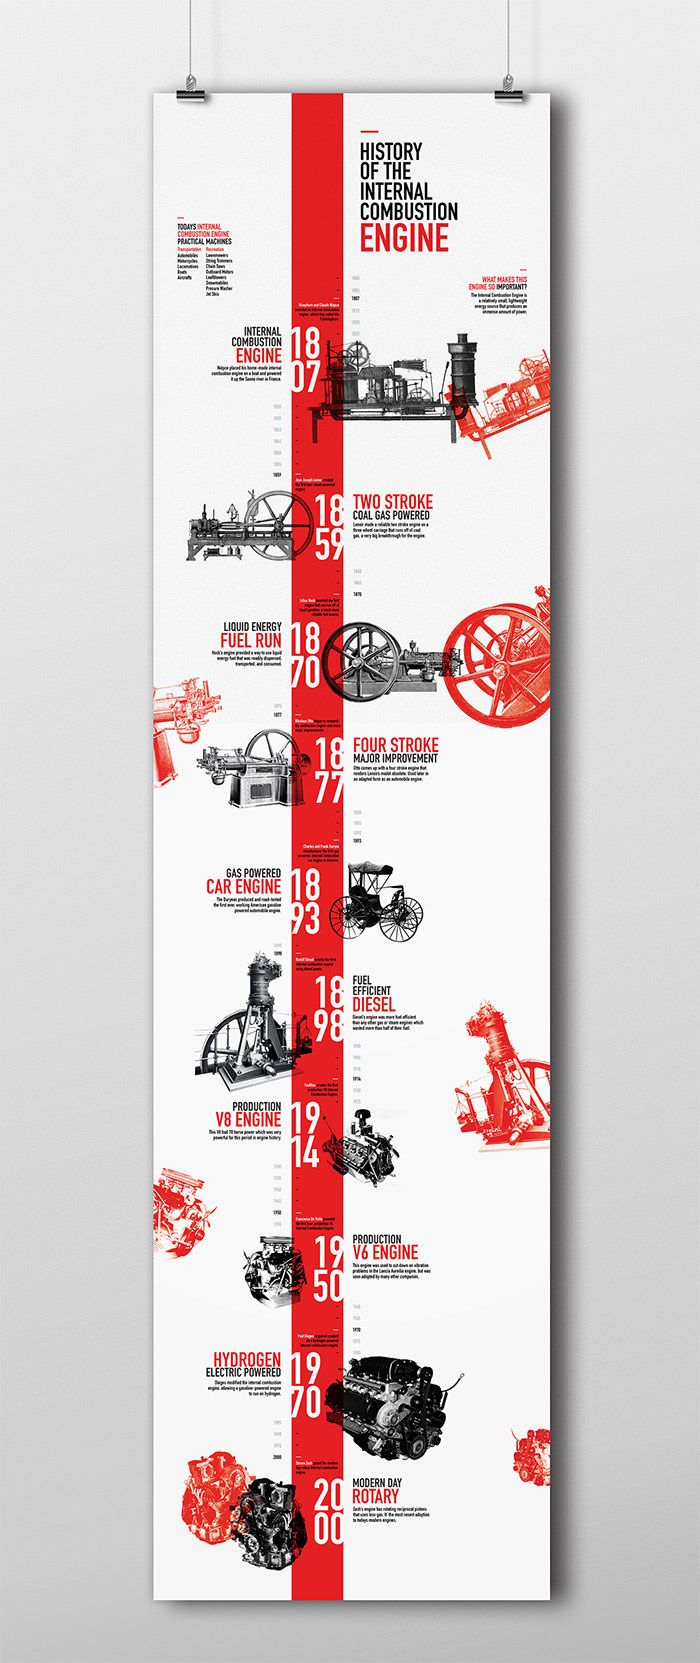 30 Graphic Design Trends In Infographics Timeline Design Timeline Infographic Infographic